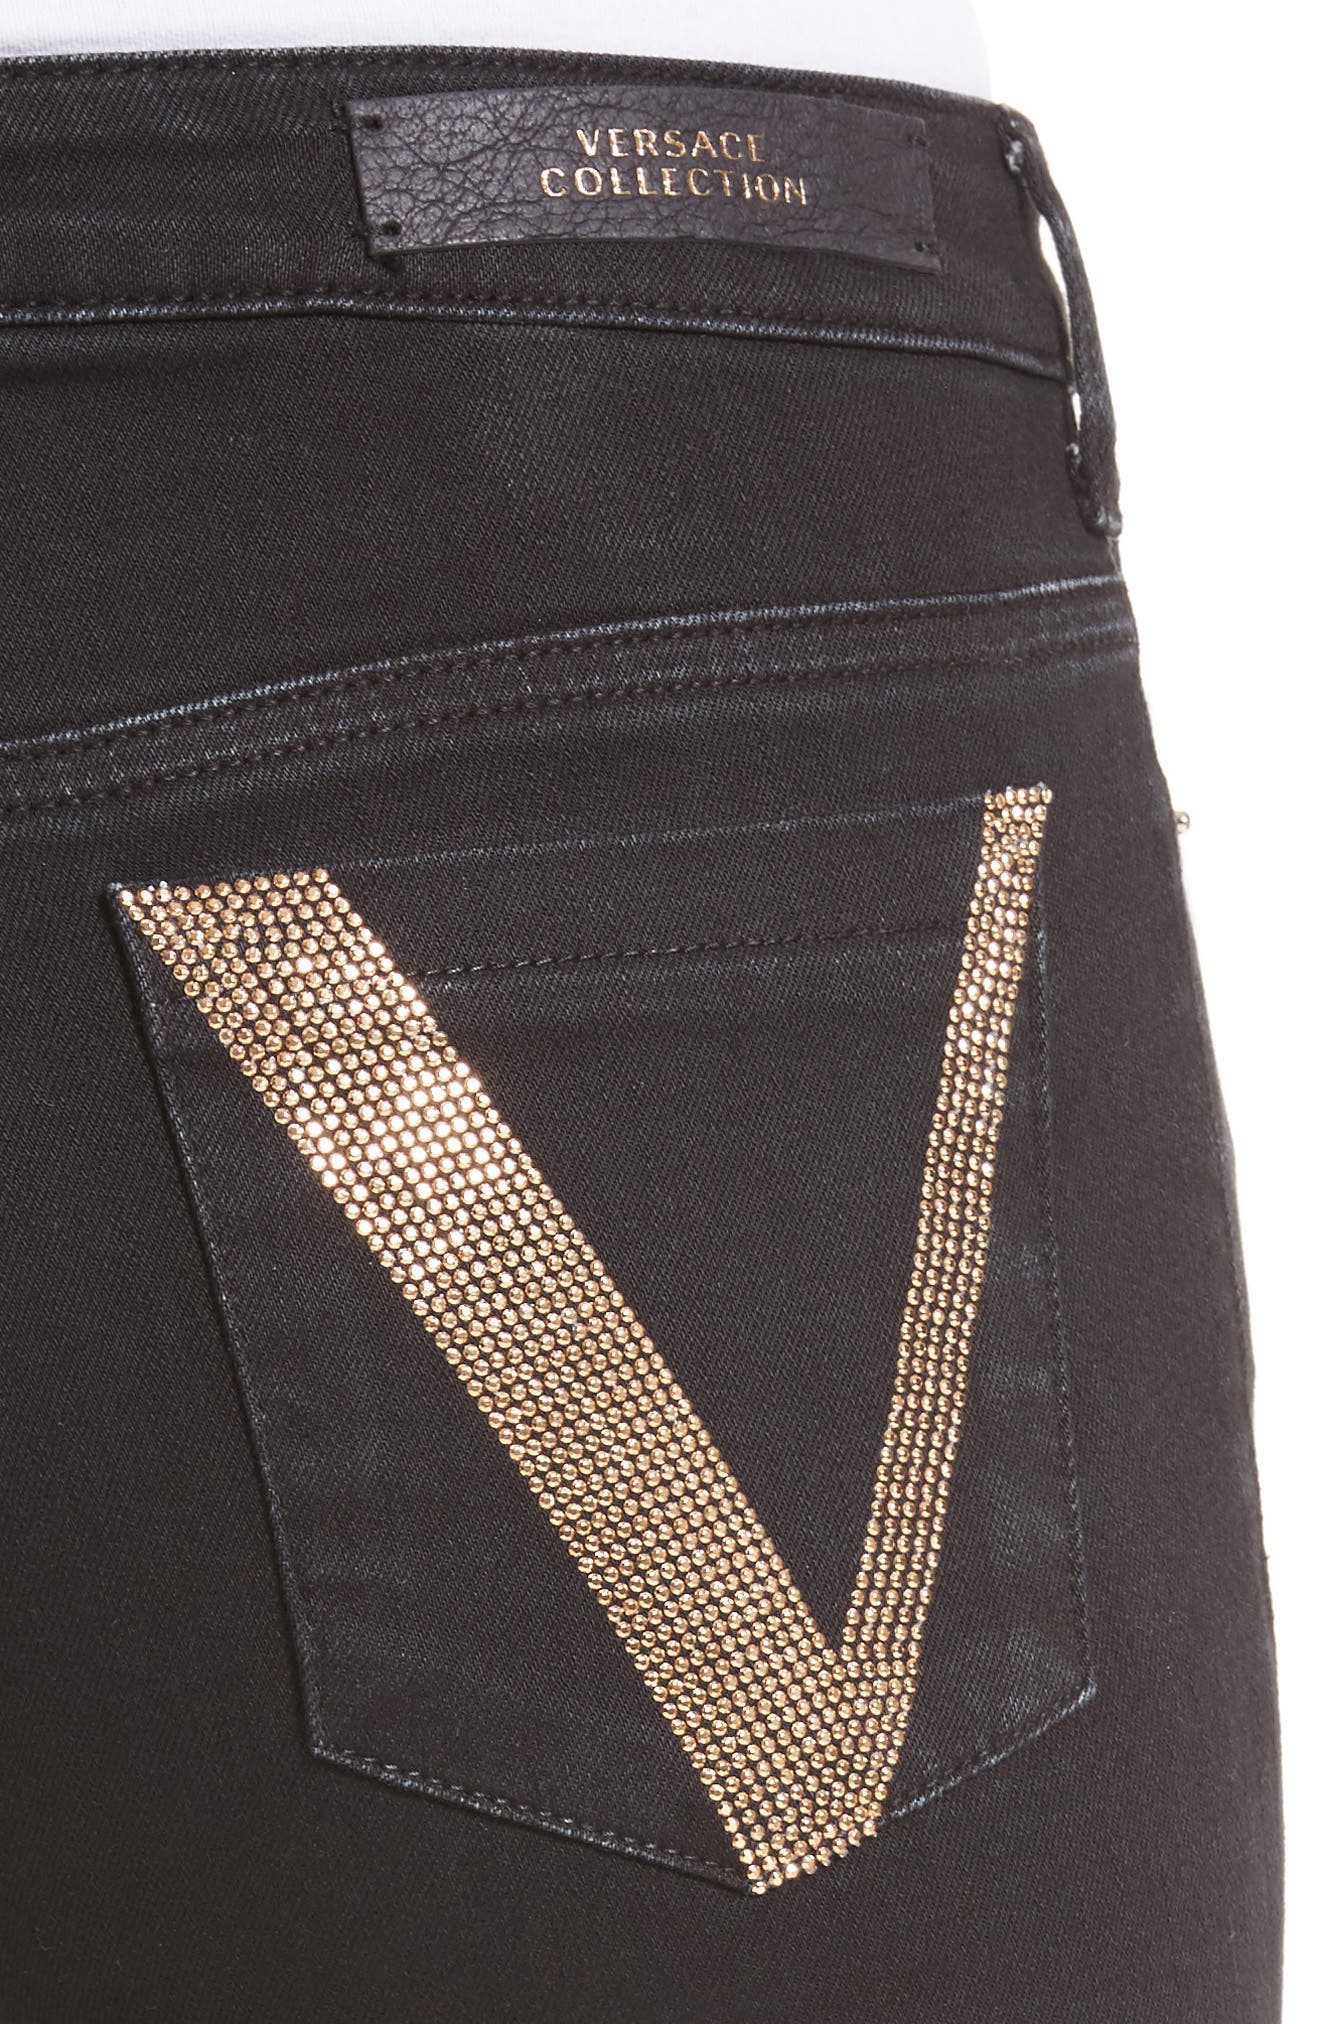 Embellished Pocket Skinny Jeans,                             Alternate thumbnail 4, color,                             Black